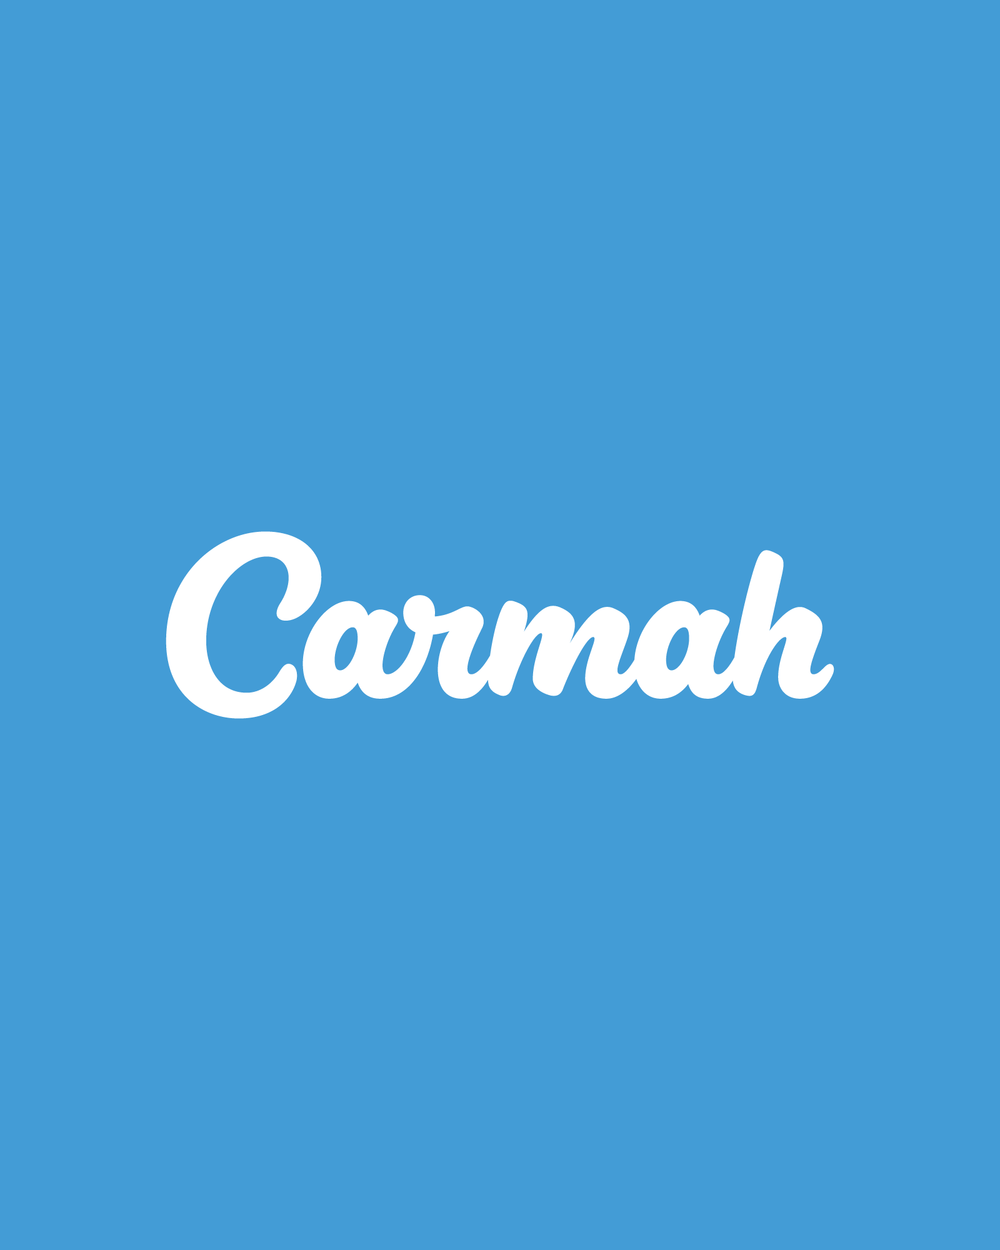 Hand Lettered Logotype    Carmah    View Project